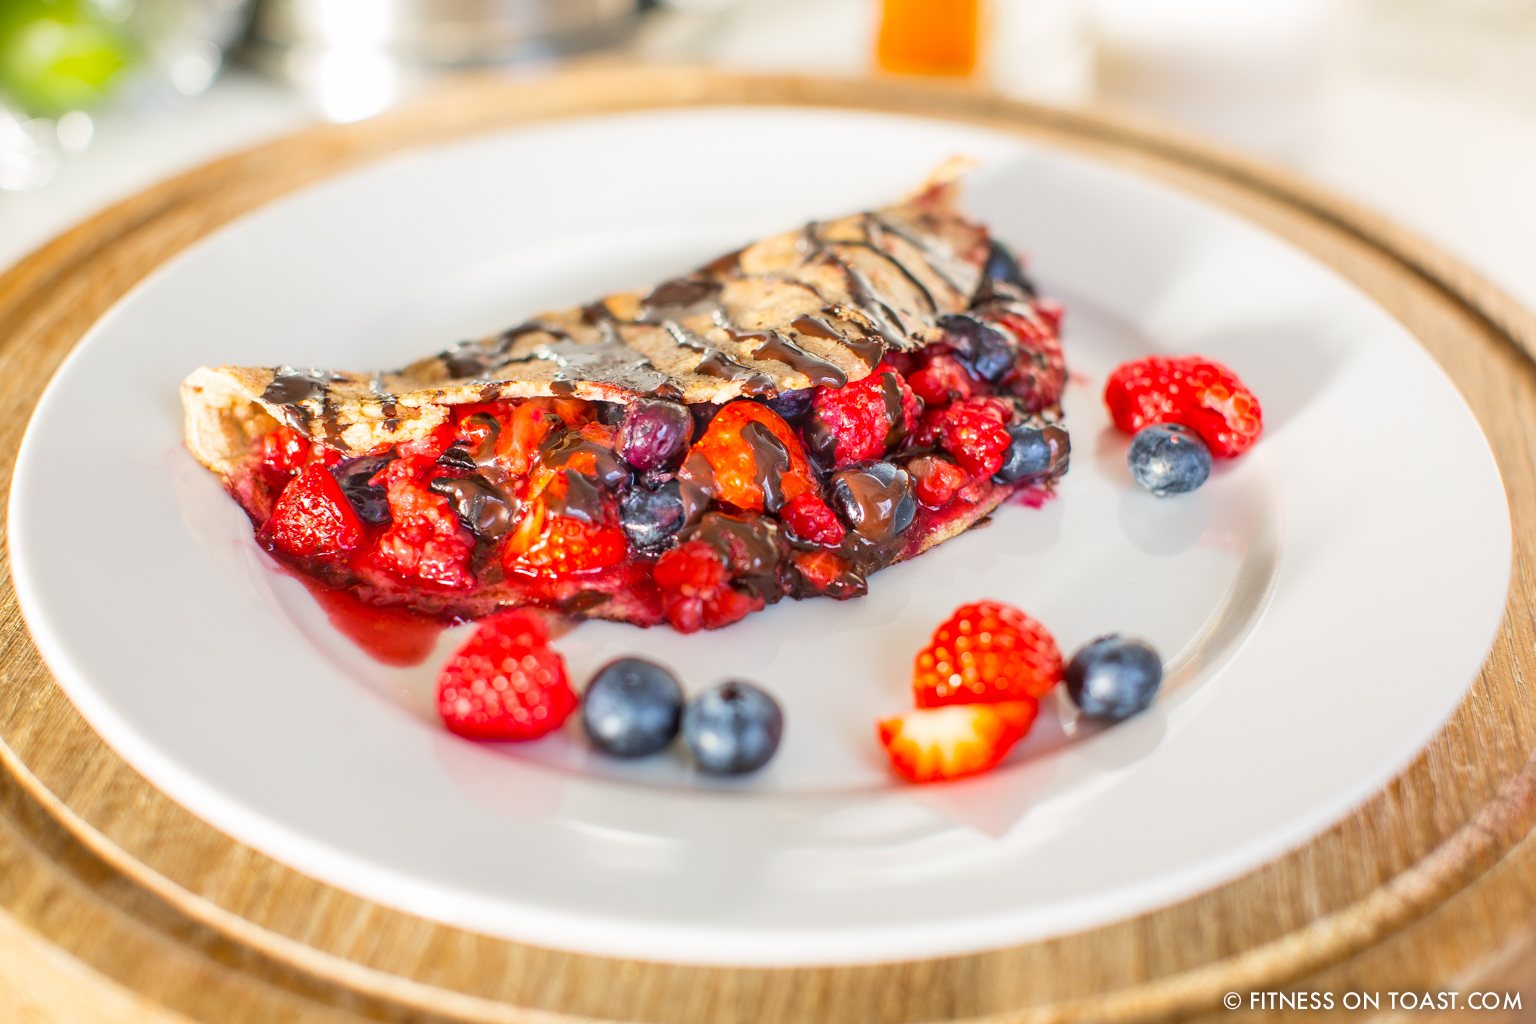 fitness-on-toast-faya-blog-girl-healthy-recipe-food-nutrition-tasty-berry-chocolate-pancake-breakfast-treat-weekend-delicious-natural-healthy-simple-easy-9